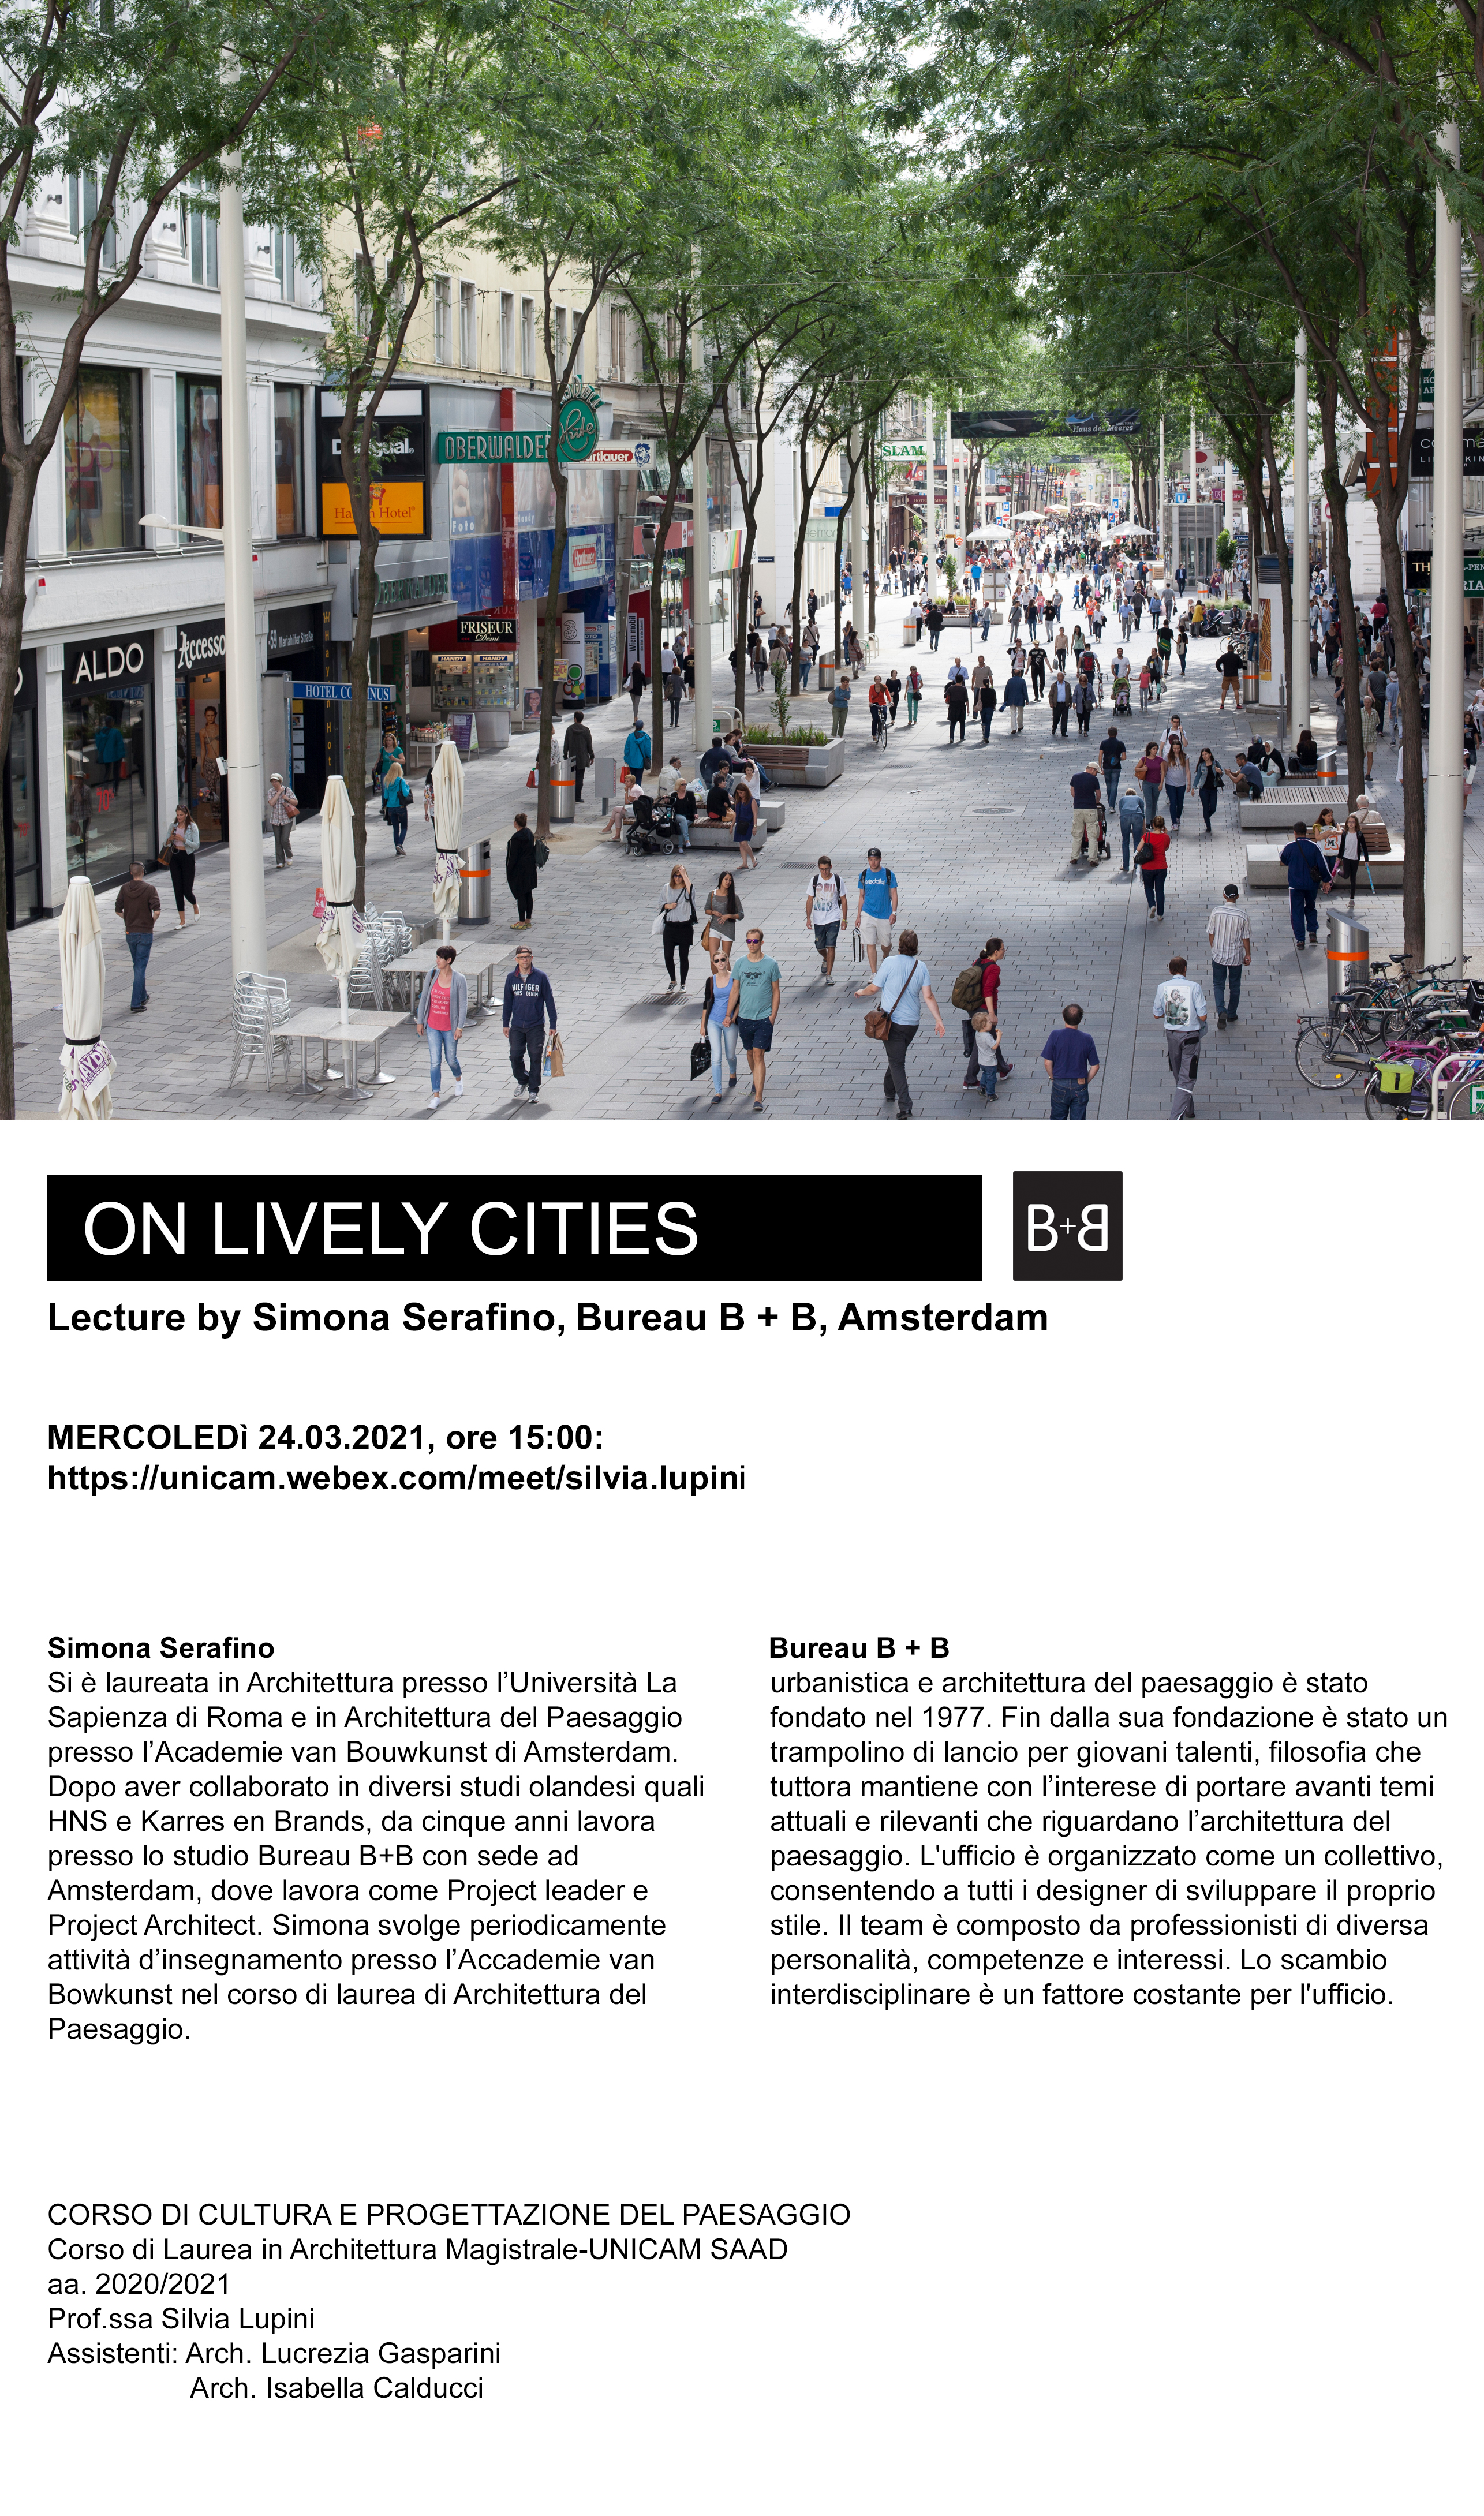 ON LIVELY CITIES